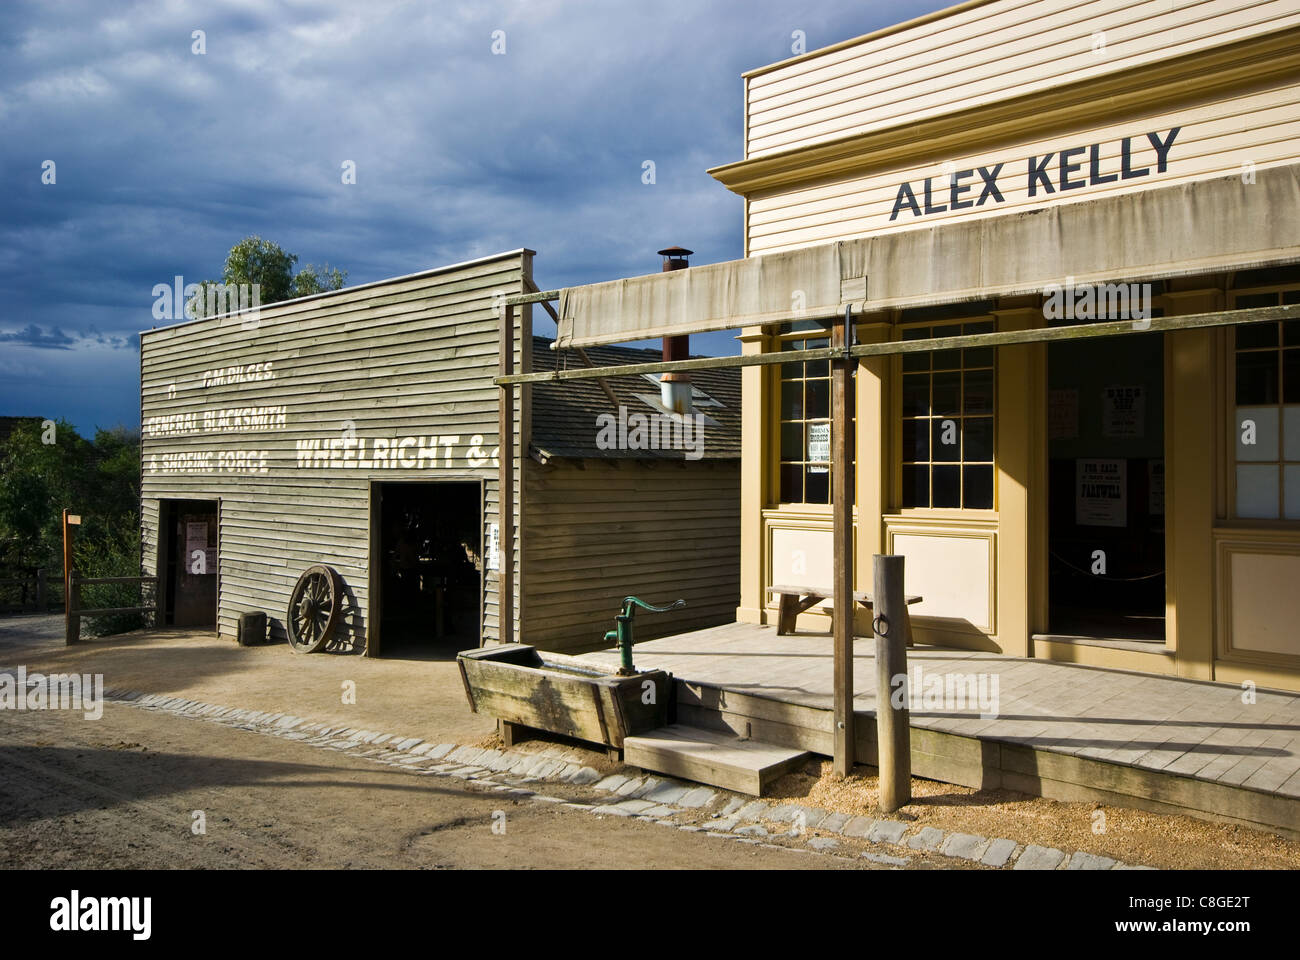 Antique stables and blacksmith wheelwright workshops on main street. - Stock Image